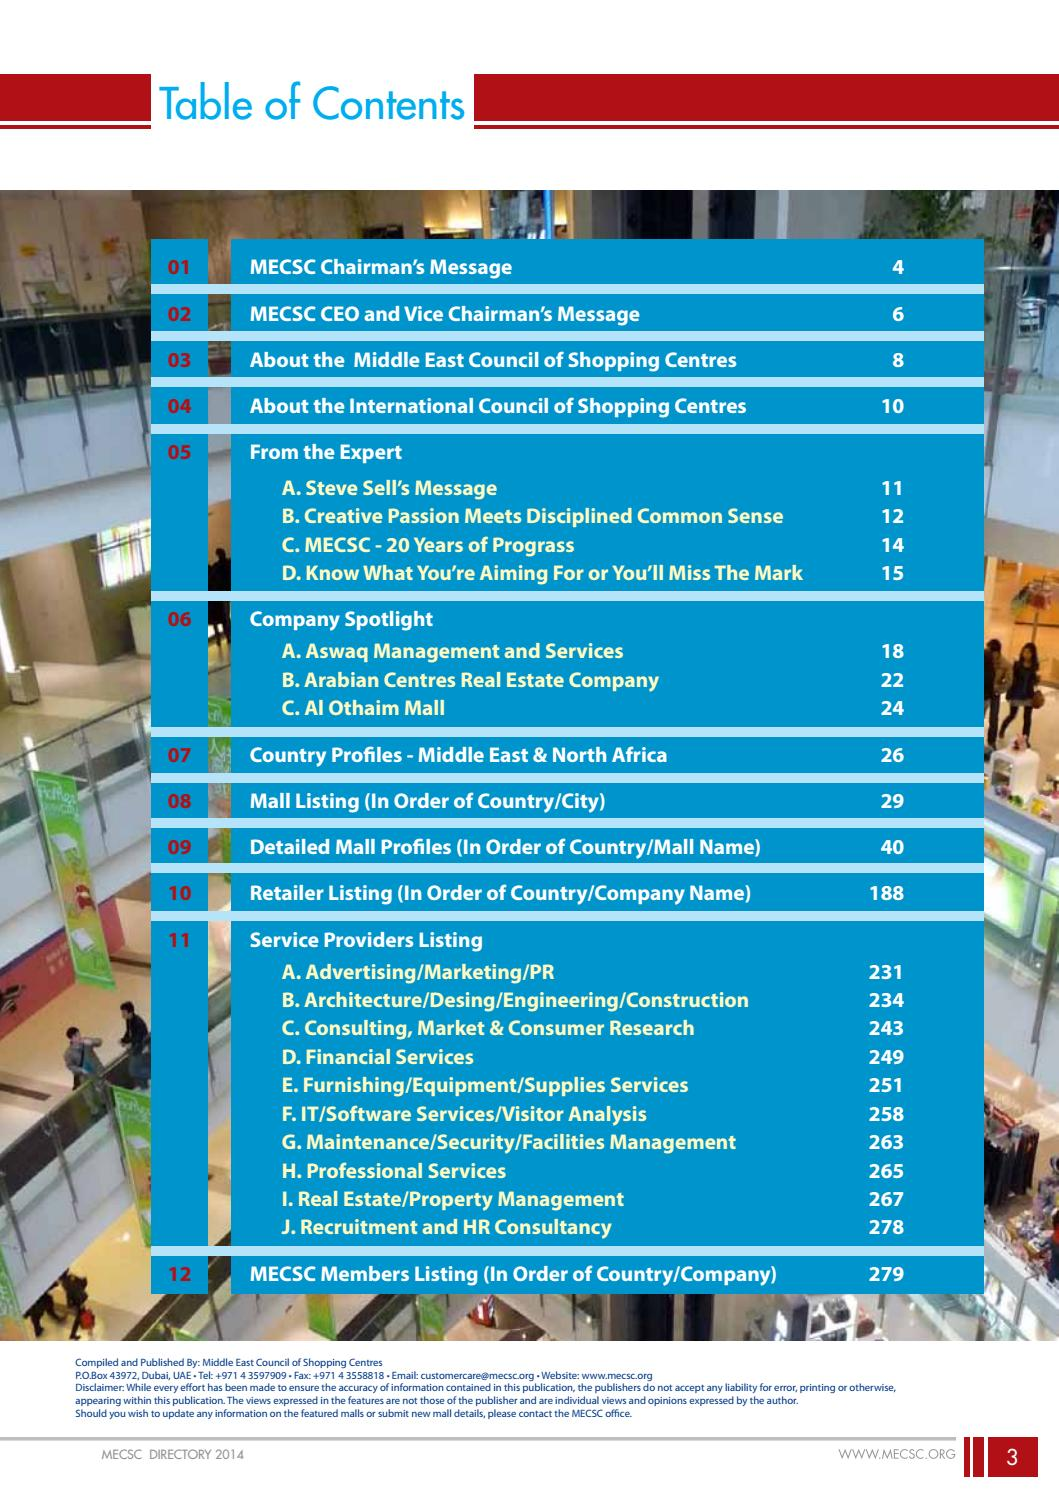 MECSC Directory 2014 by MECSC - issuu